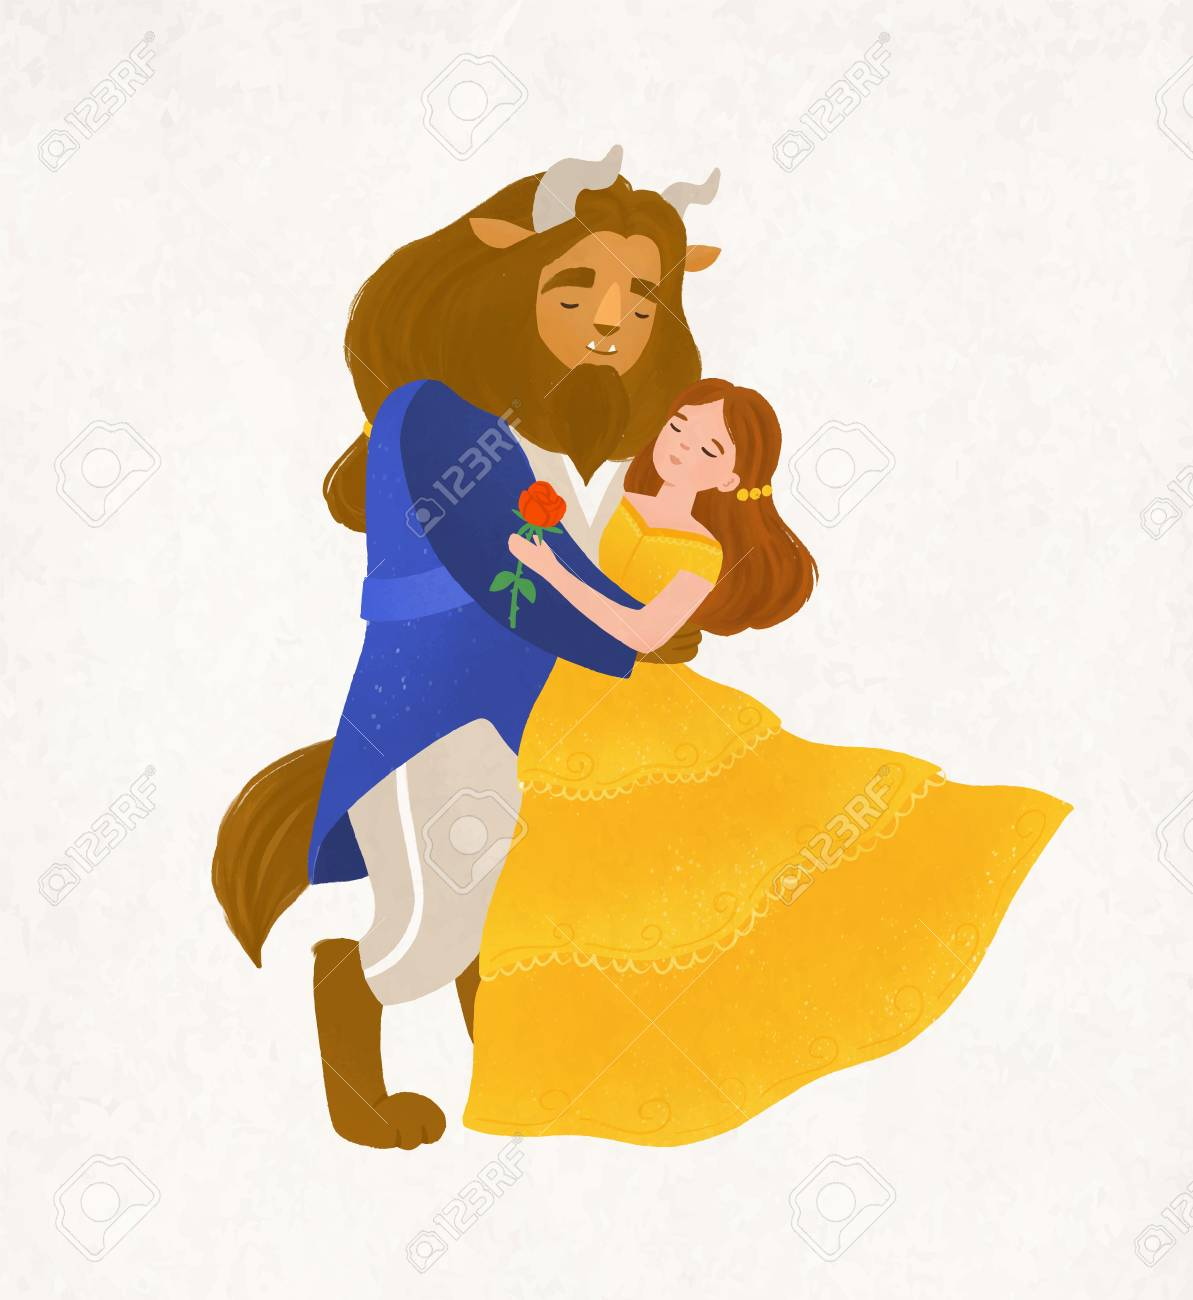 Original - Disney Beauty And The Beast Clipart (#3608362) - PinClipart